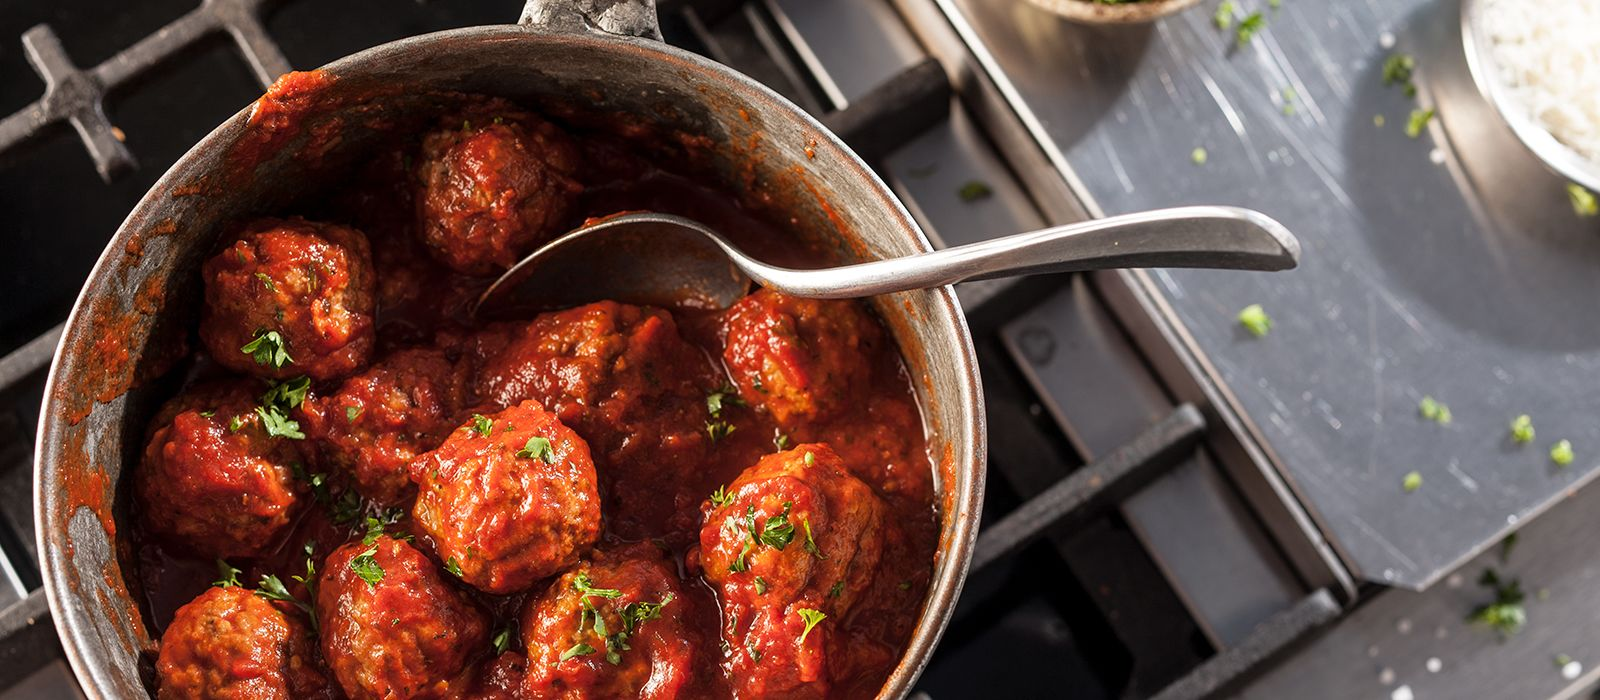 home market foods cooked perfect meatballs in pan